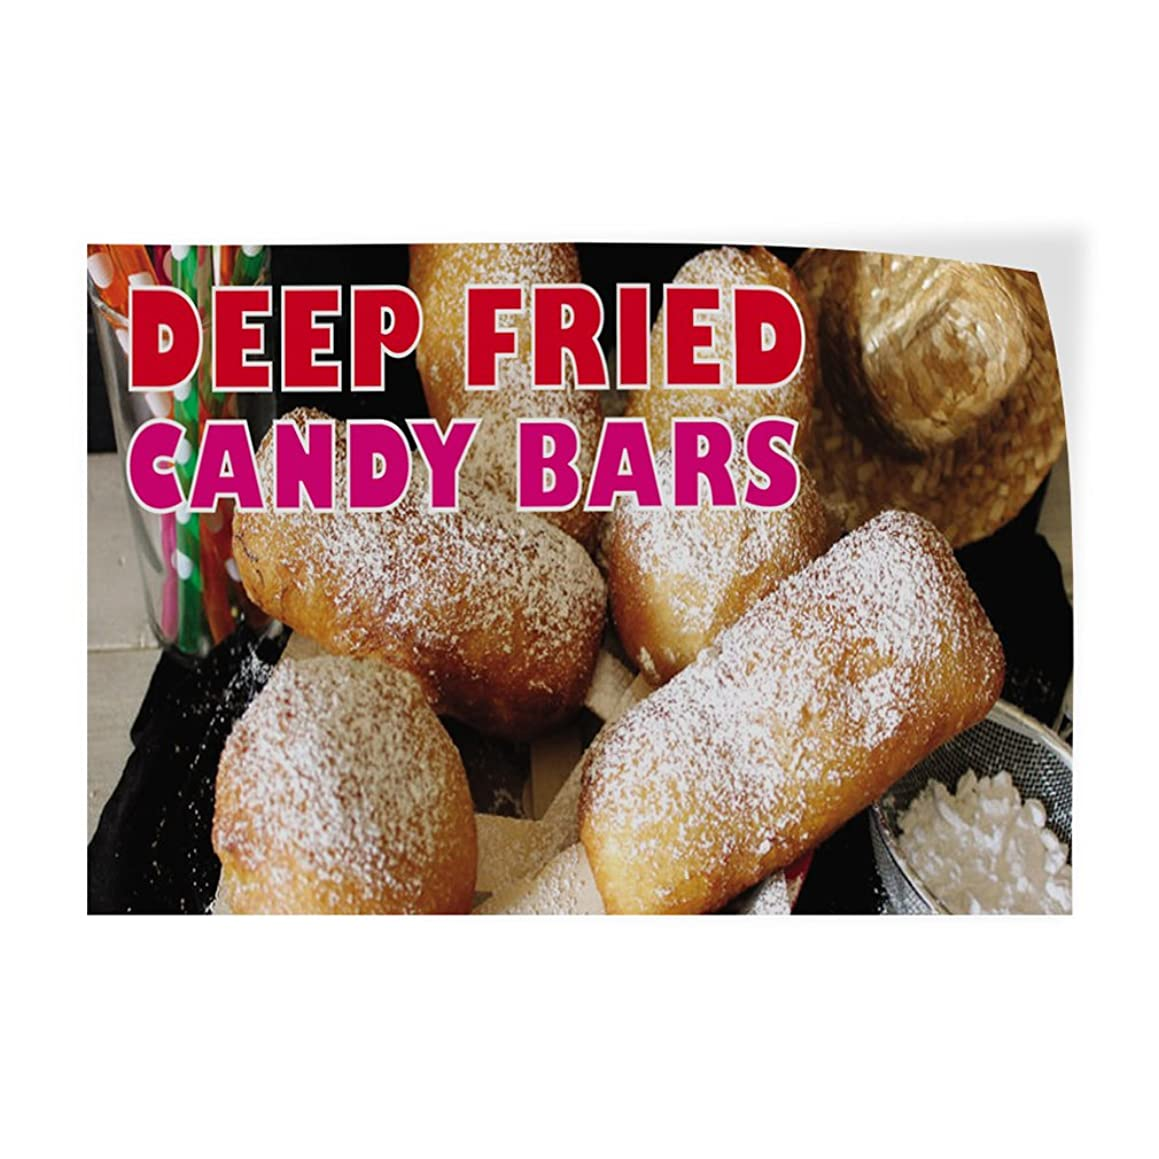 Decal Sticker Multiple Sizes Deep Fried Candy Bars #1 Style D Retail Deep Fried Candy Bars Outdoor Store Sign White - 36inx24in, Set of 10